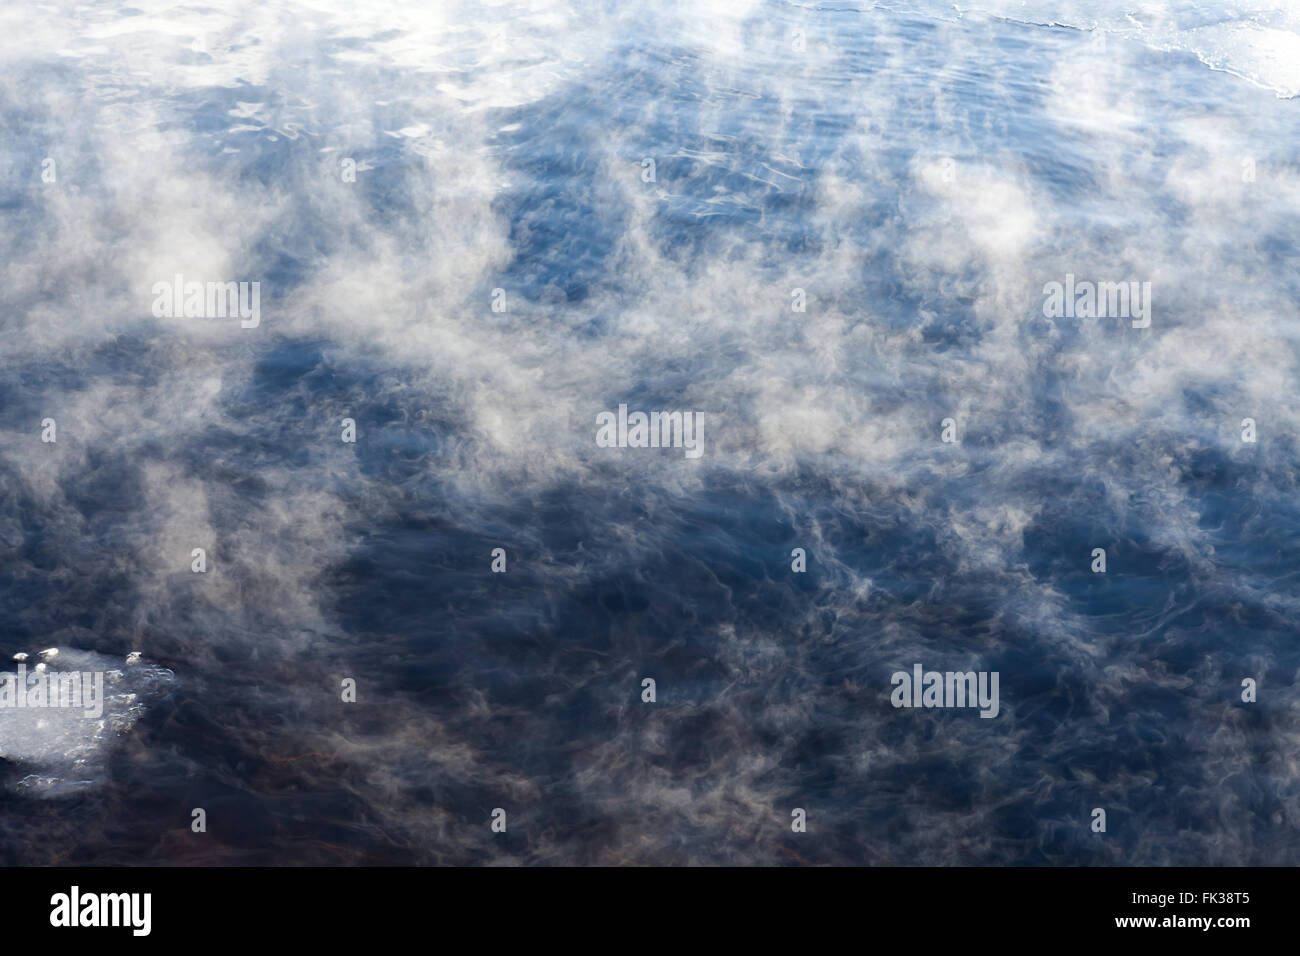 Water vapor on surface of cold water - Stock Image